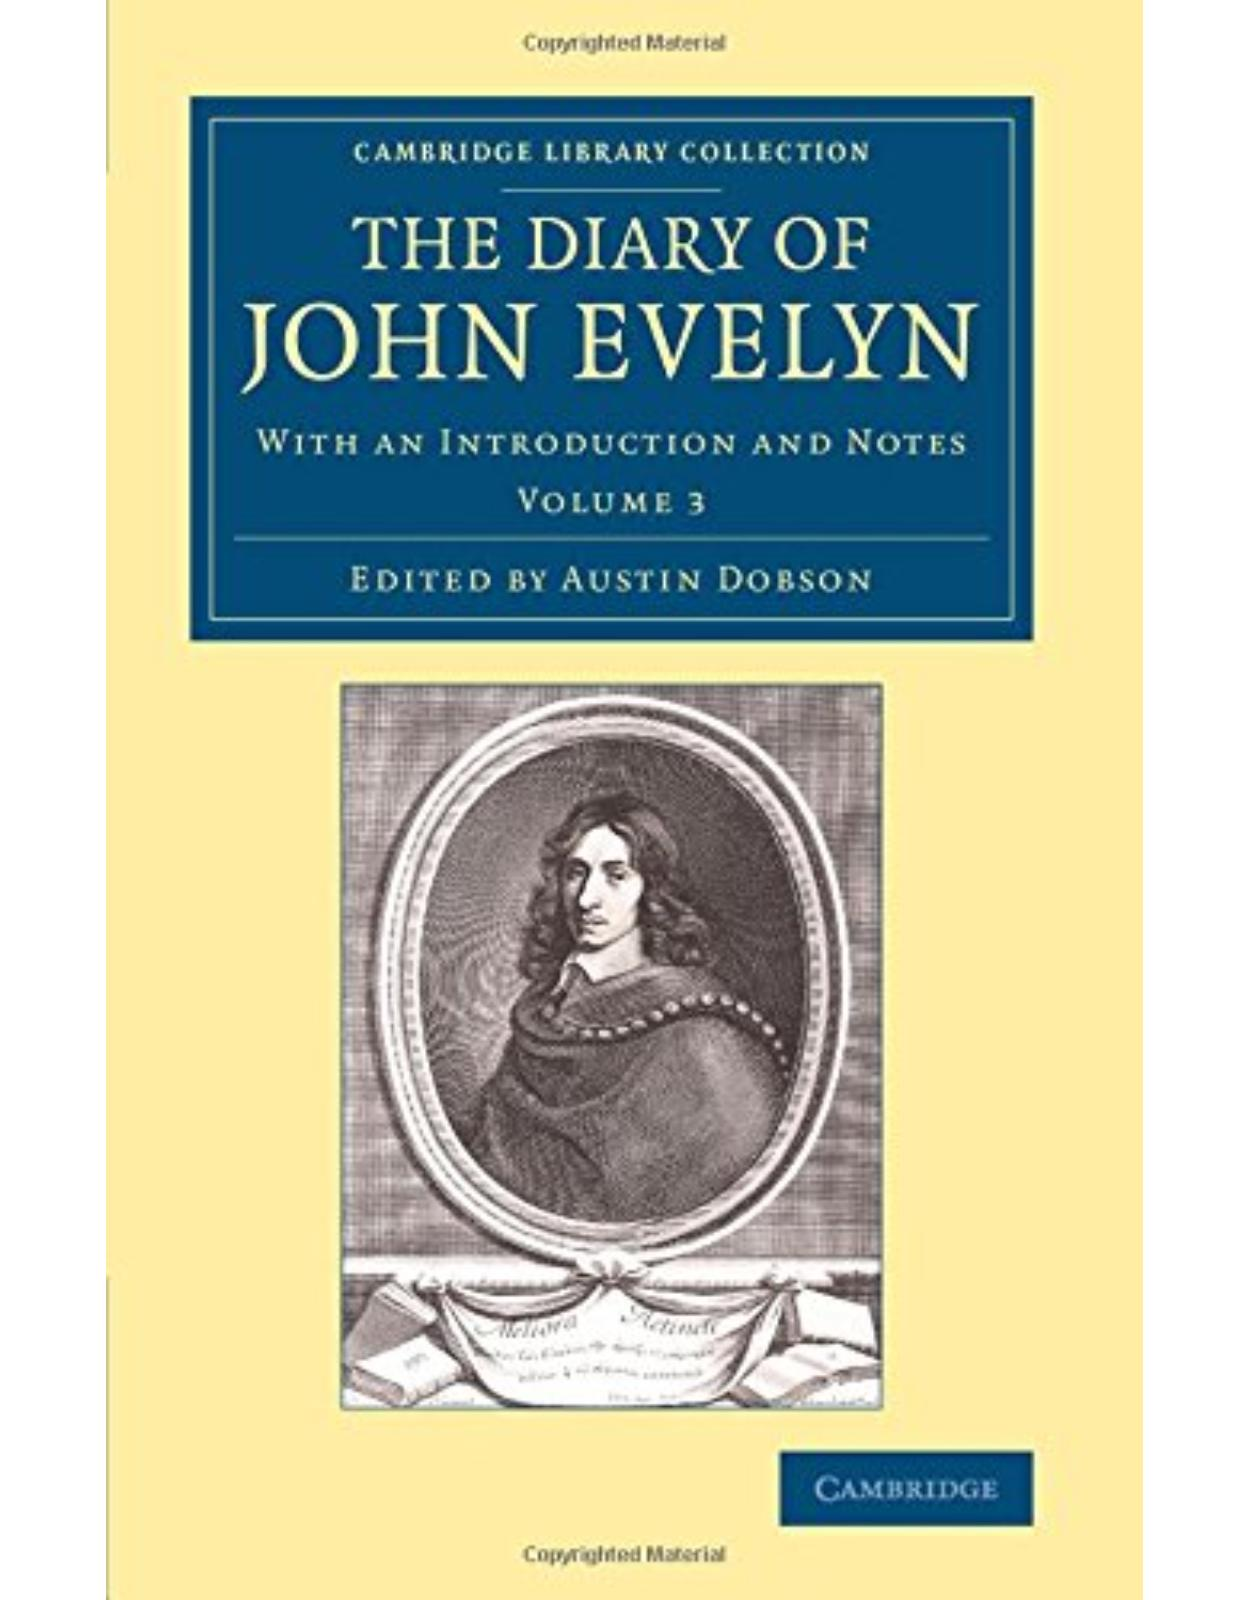 The Diary of John Evelyn 3 Volume Set: The Diary of John Evelyn: With an Introduction and Notes: Volume 3 (Cambridge Library Collection - British & Irish History, 17th & 18th Centuries)